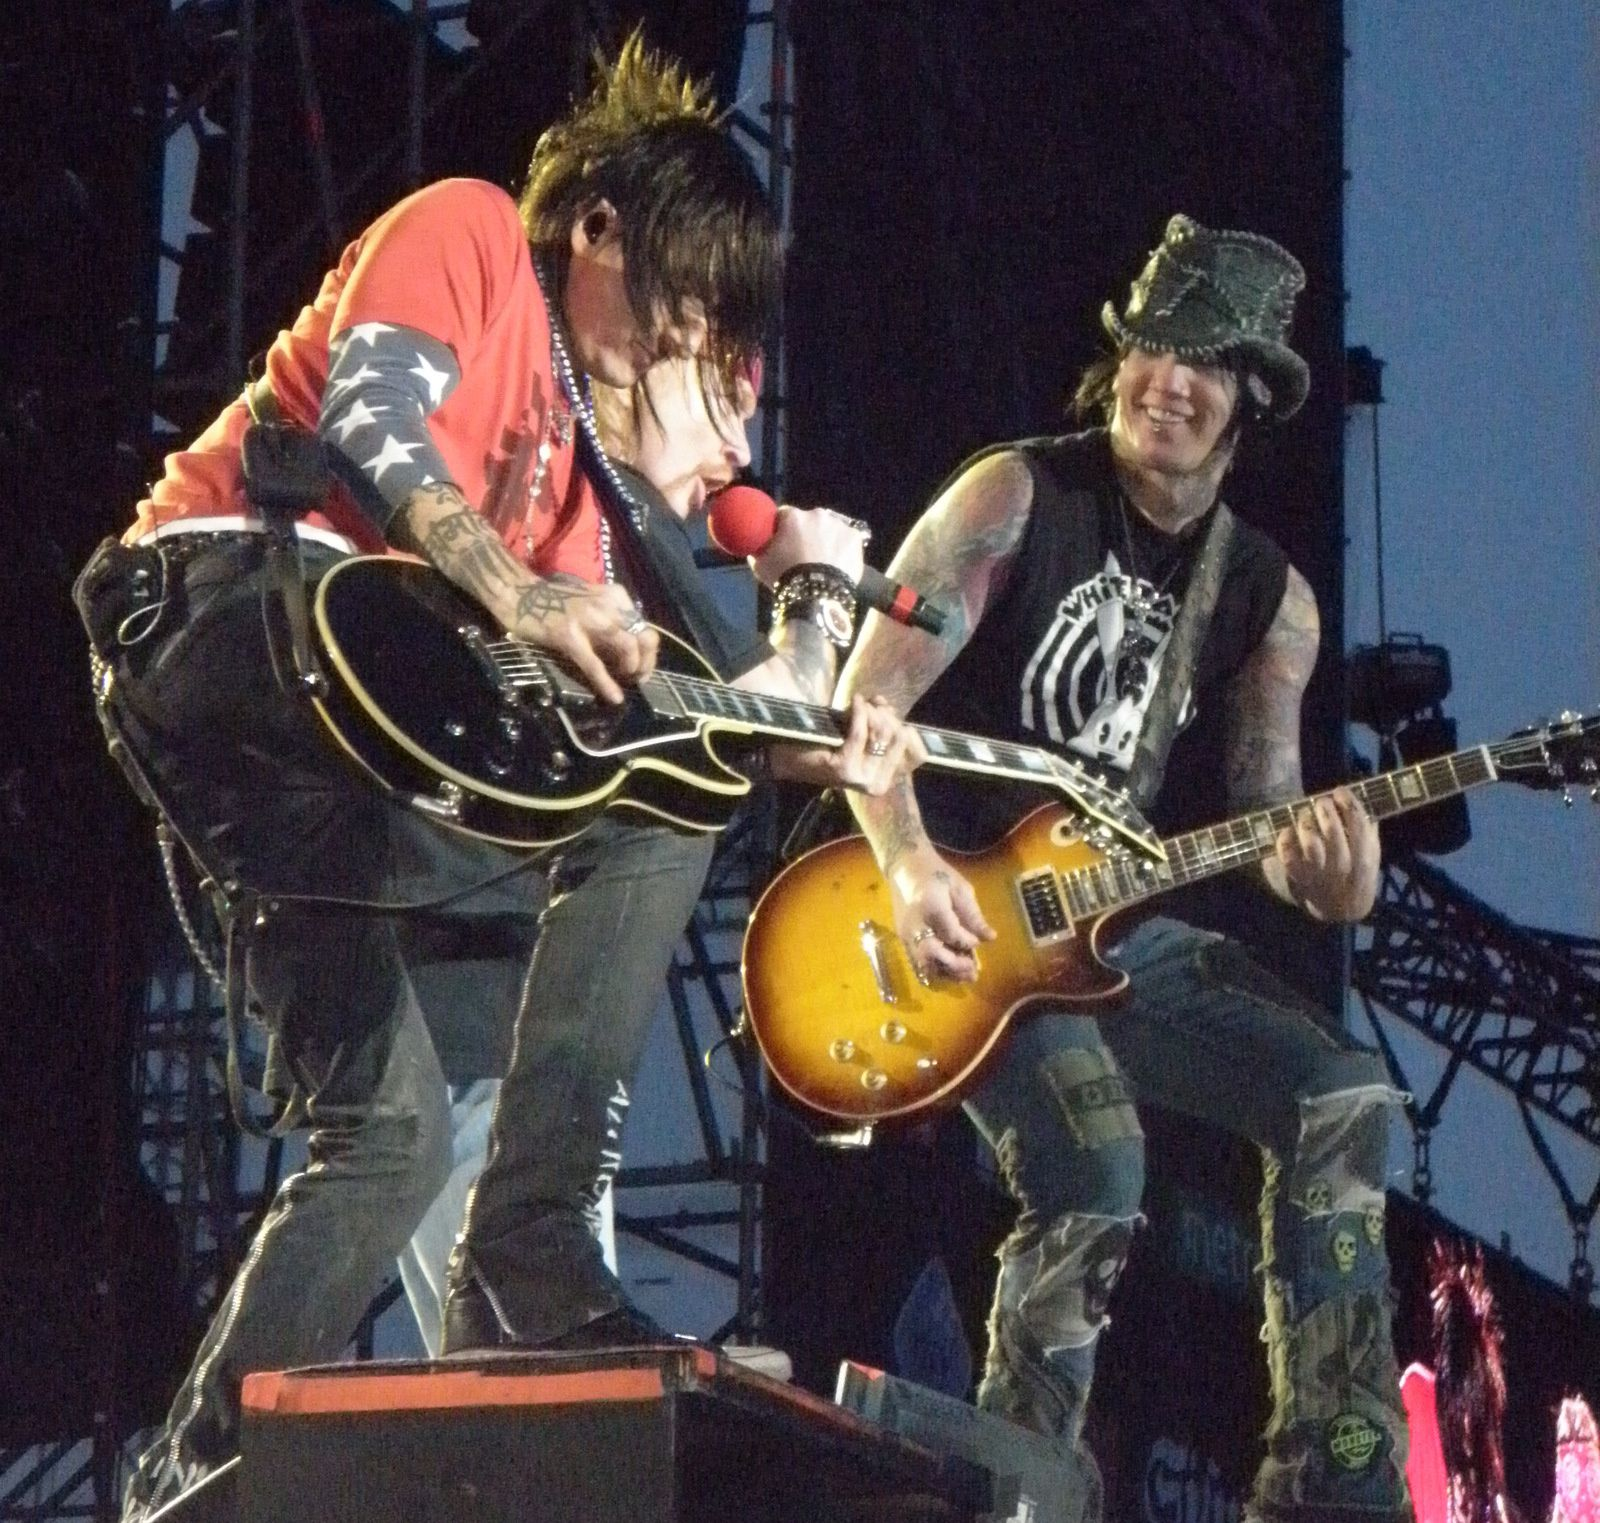 Richard Fortus, Axl Rose and DJ Ashba, live with Guns N' Roses in Helsinki on June 5th 2010